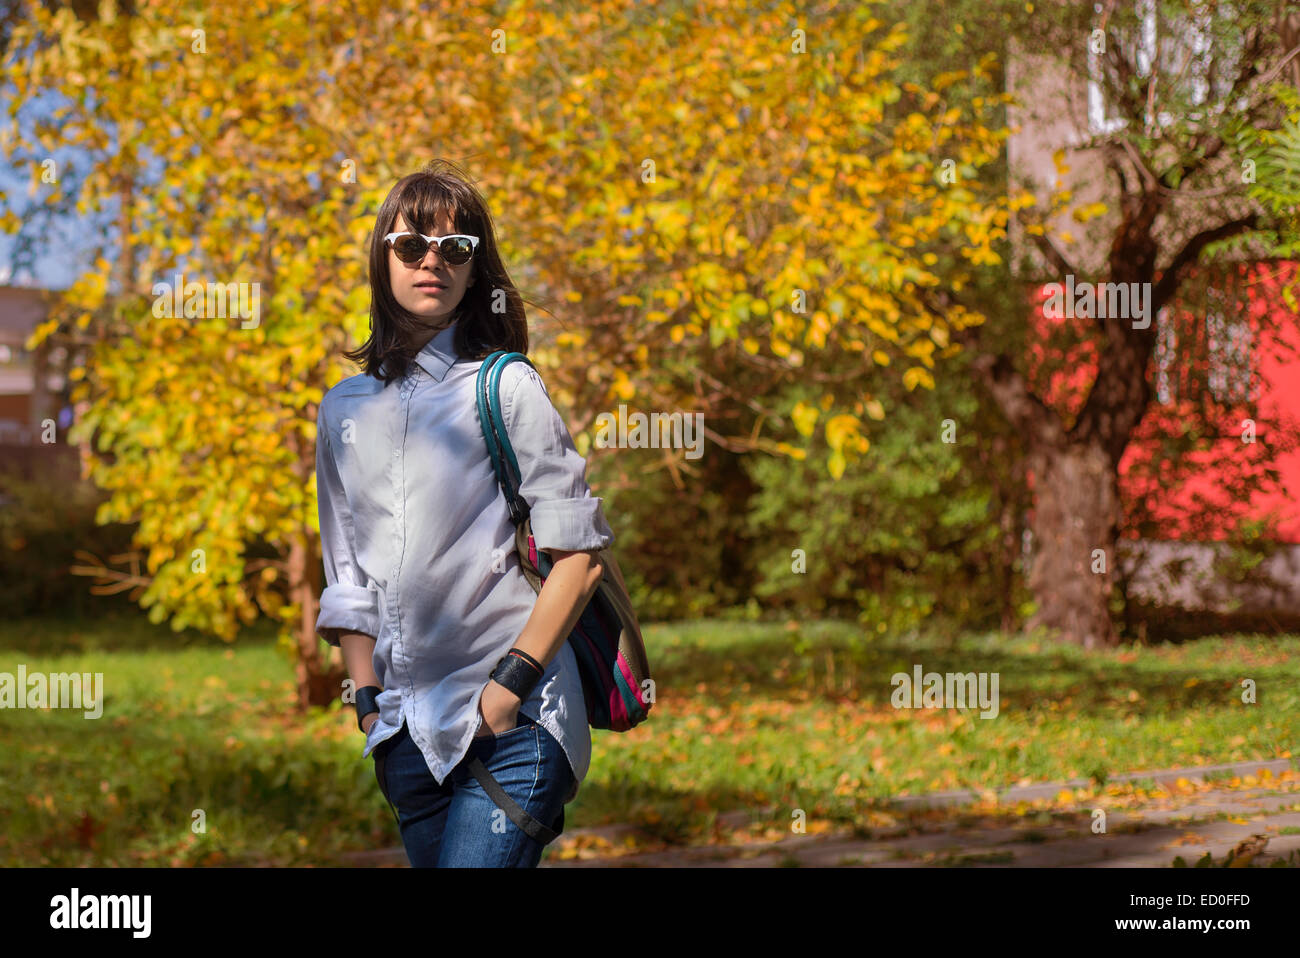 Portrait of young woman in autumn scenery - Stock Image